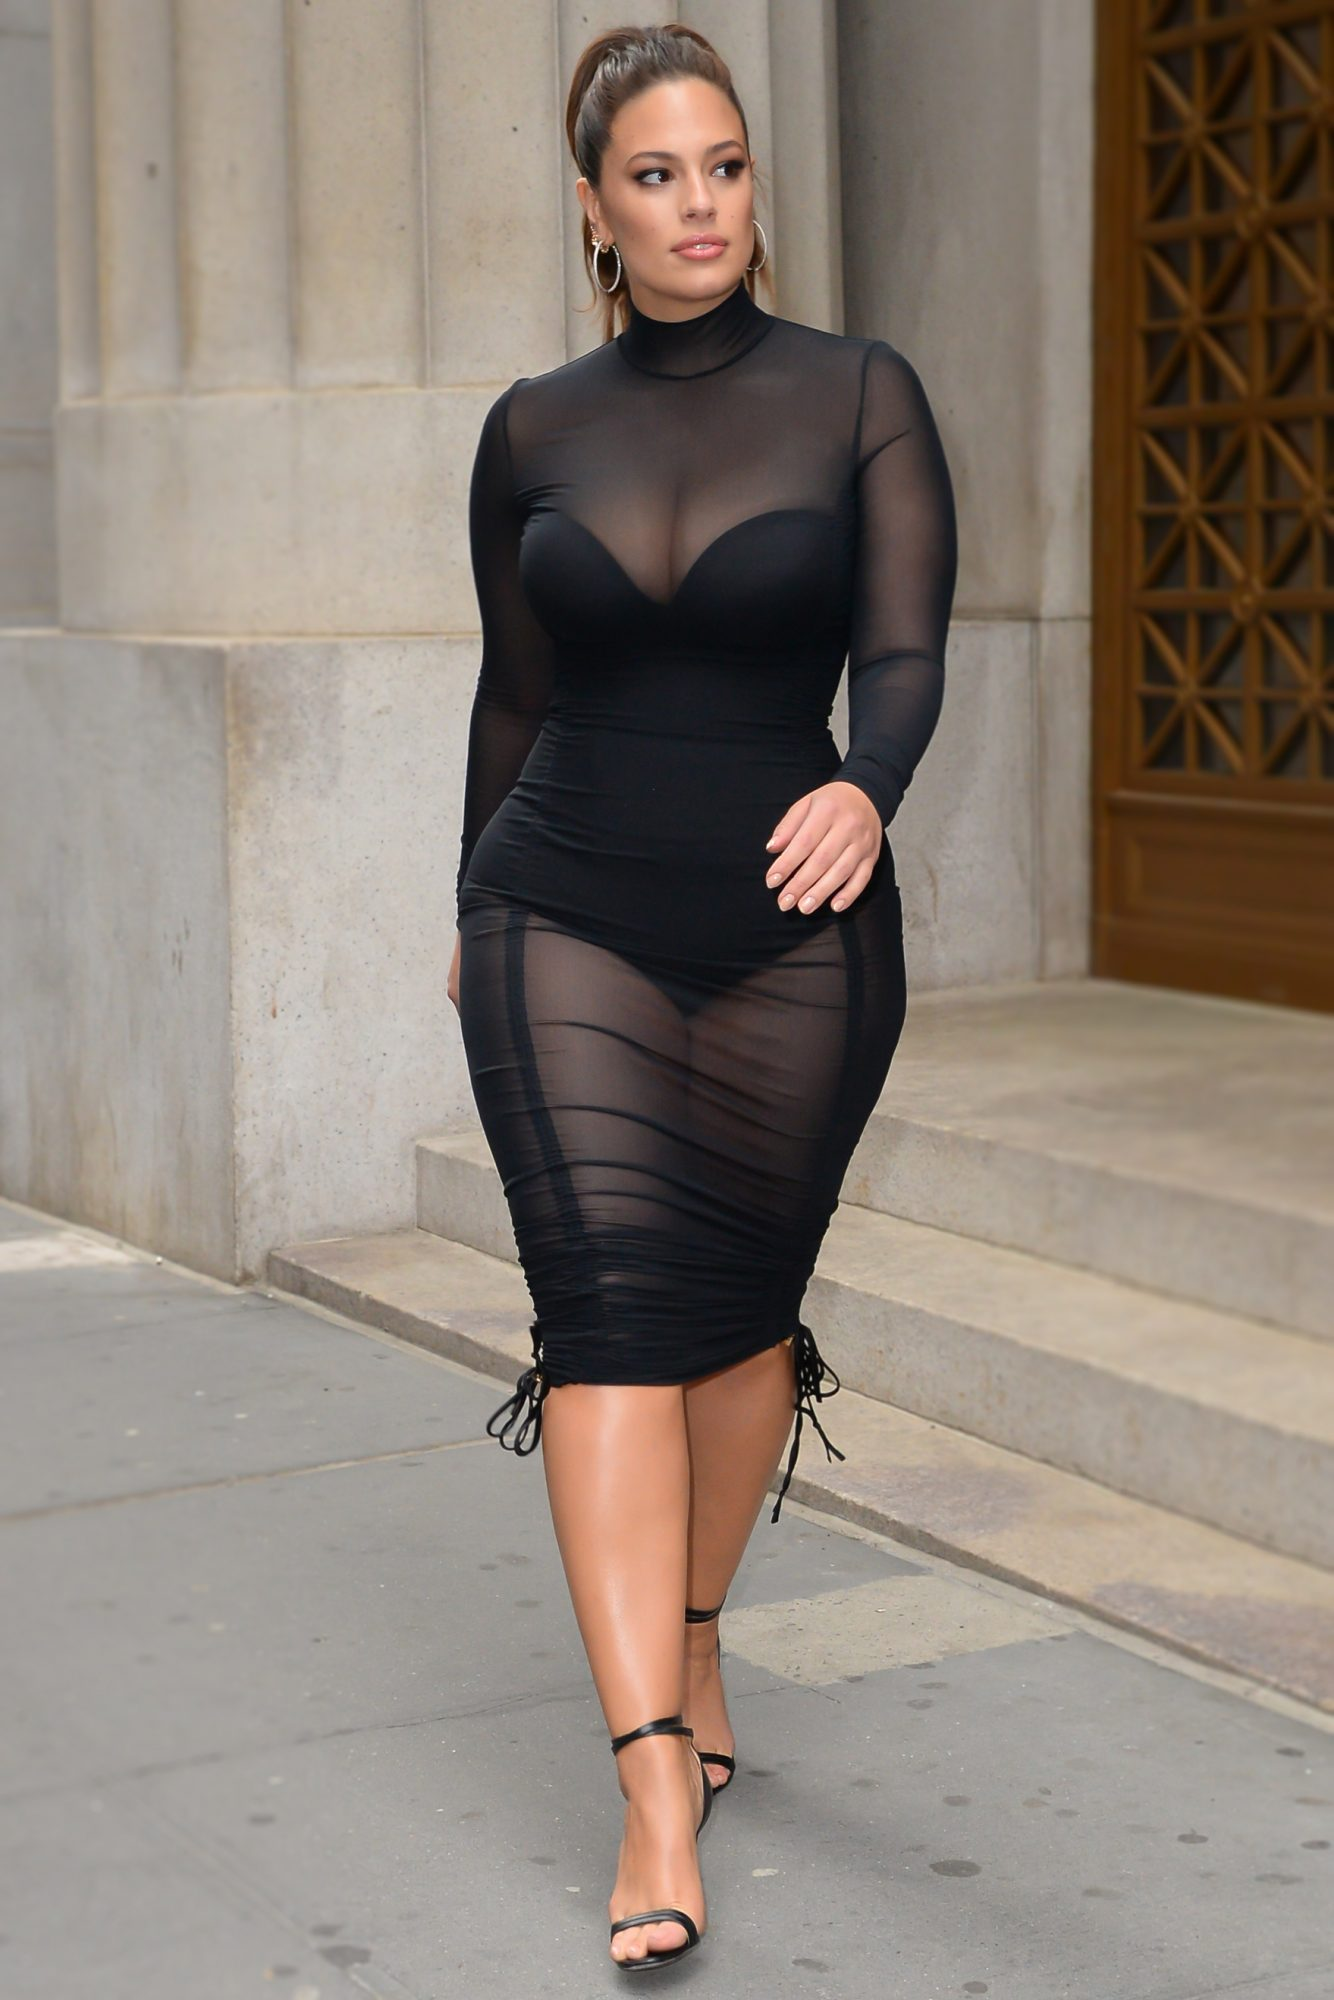 <p>Fitted Clothes Are Unflattering If You're Plus-Size</p>